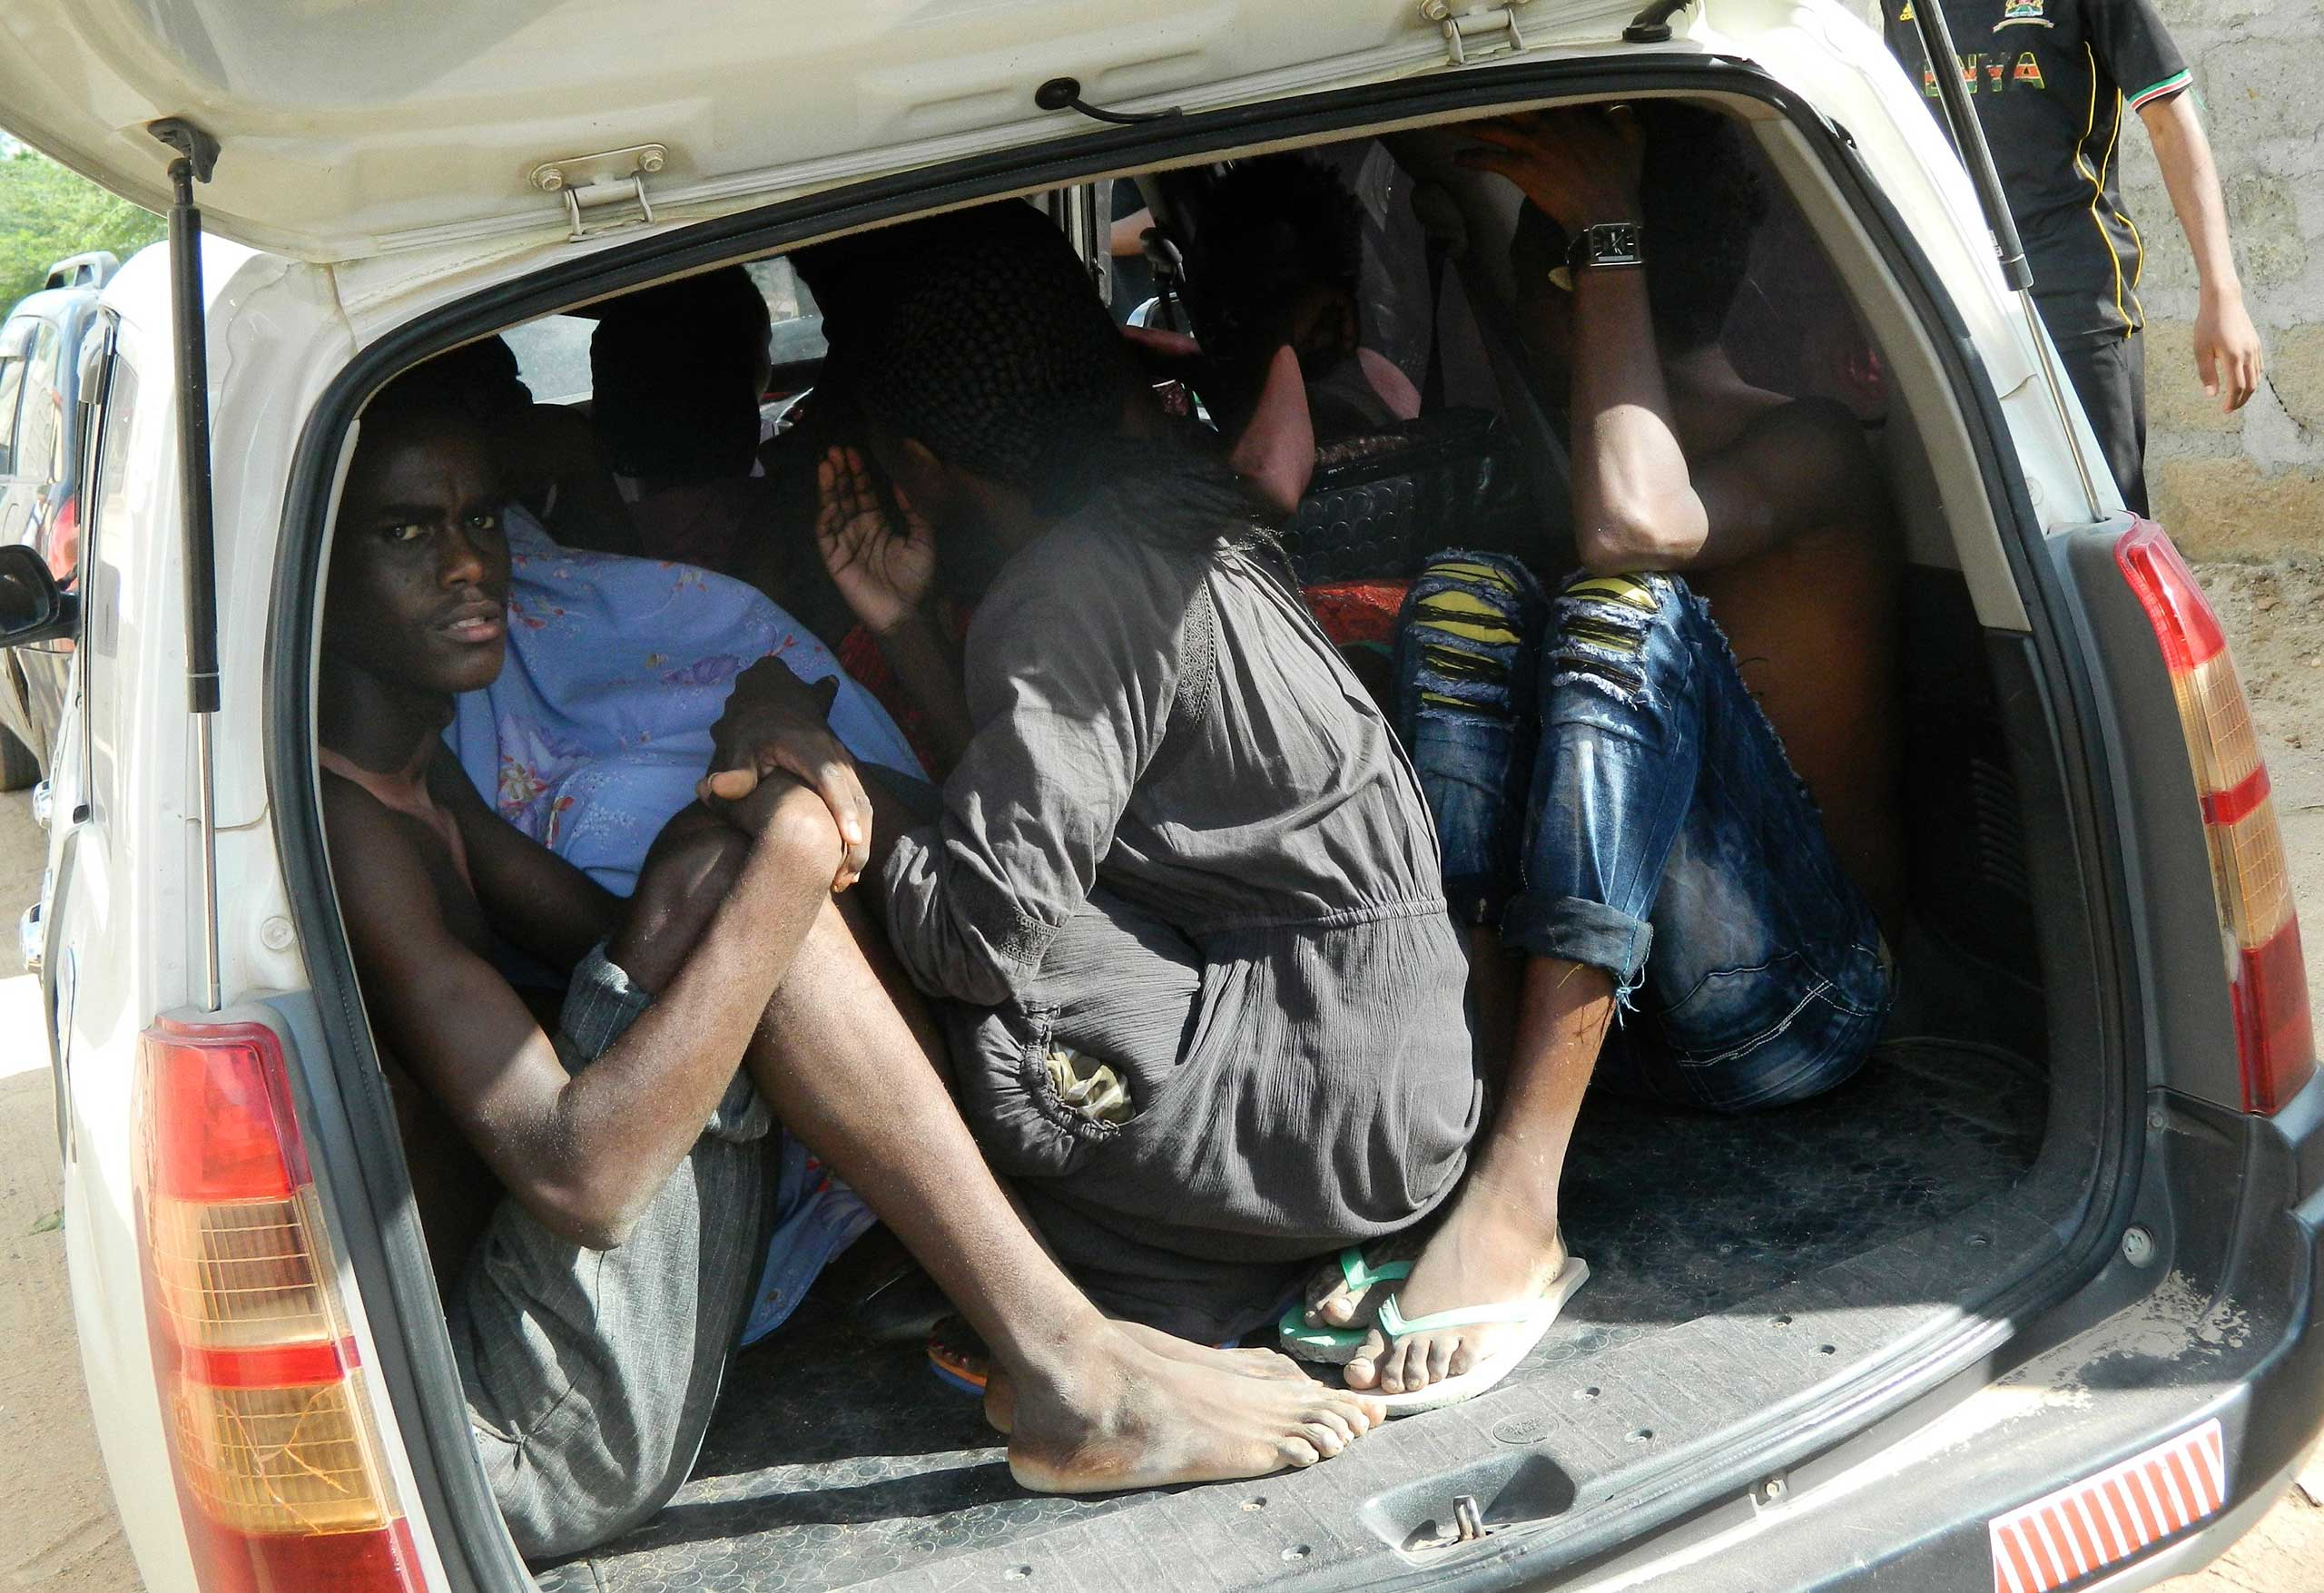 Students of the Garissa University College take shelter in a vehicle after fleeing from an attack by gunmen in Garissa, Kenya, April 2, 2015.